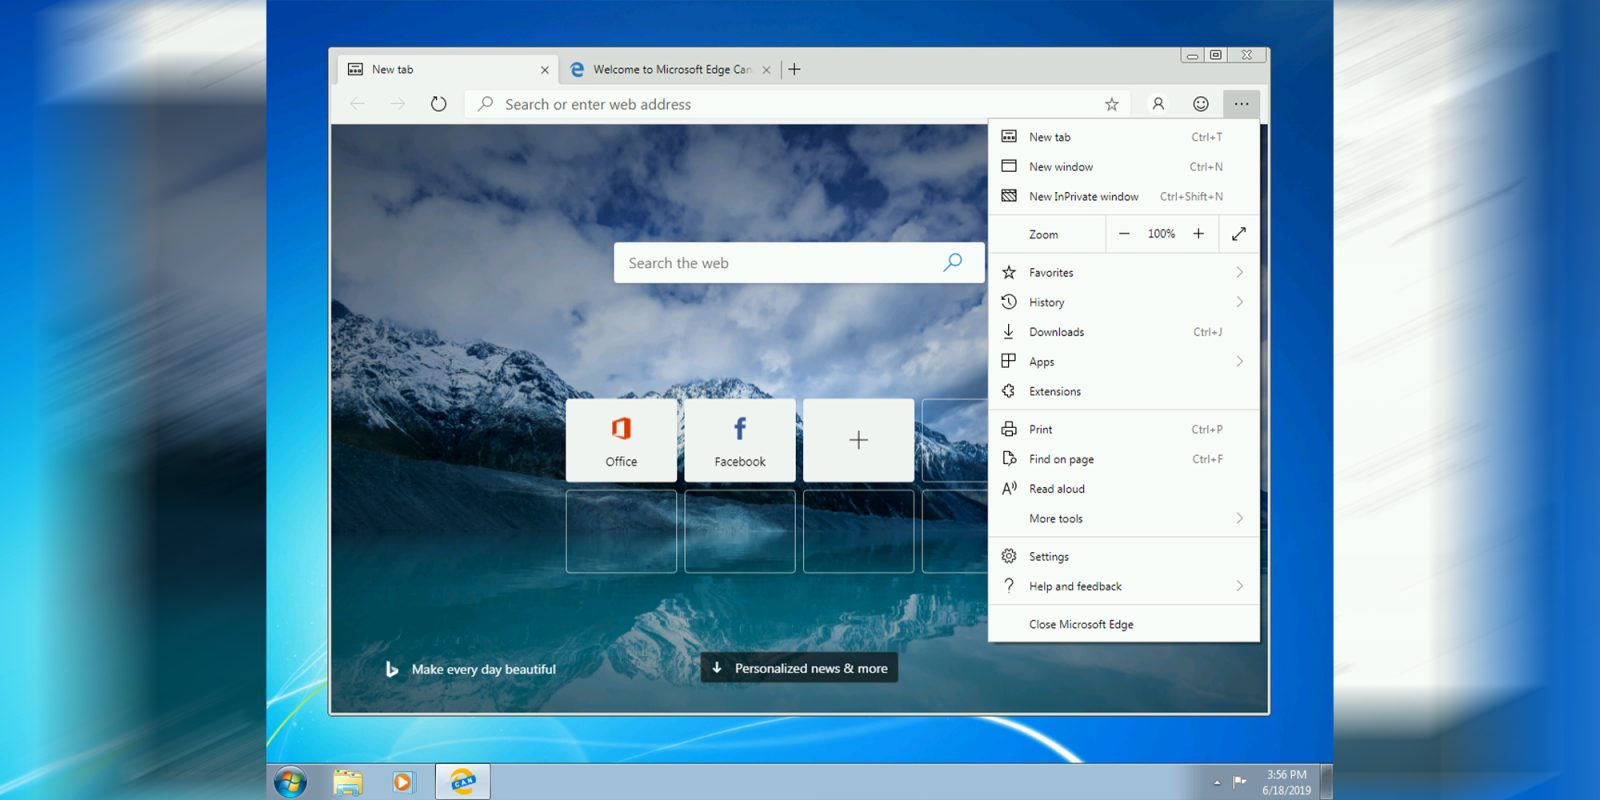 Microsoft's Chromium Edge browser comes to Windows 7 and Windows 8/8.1